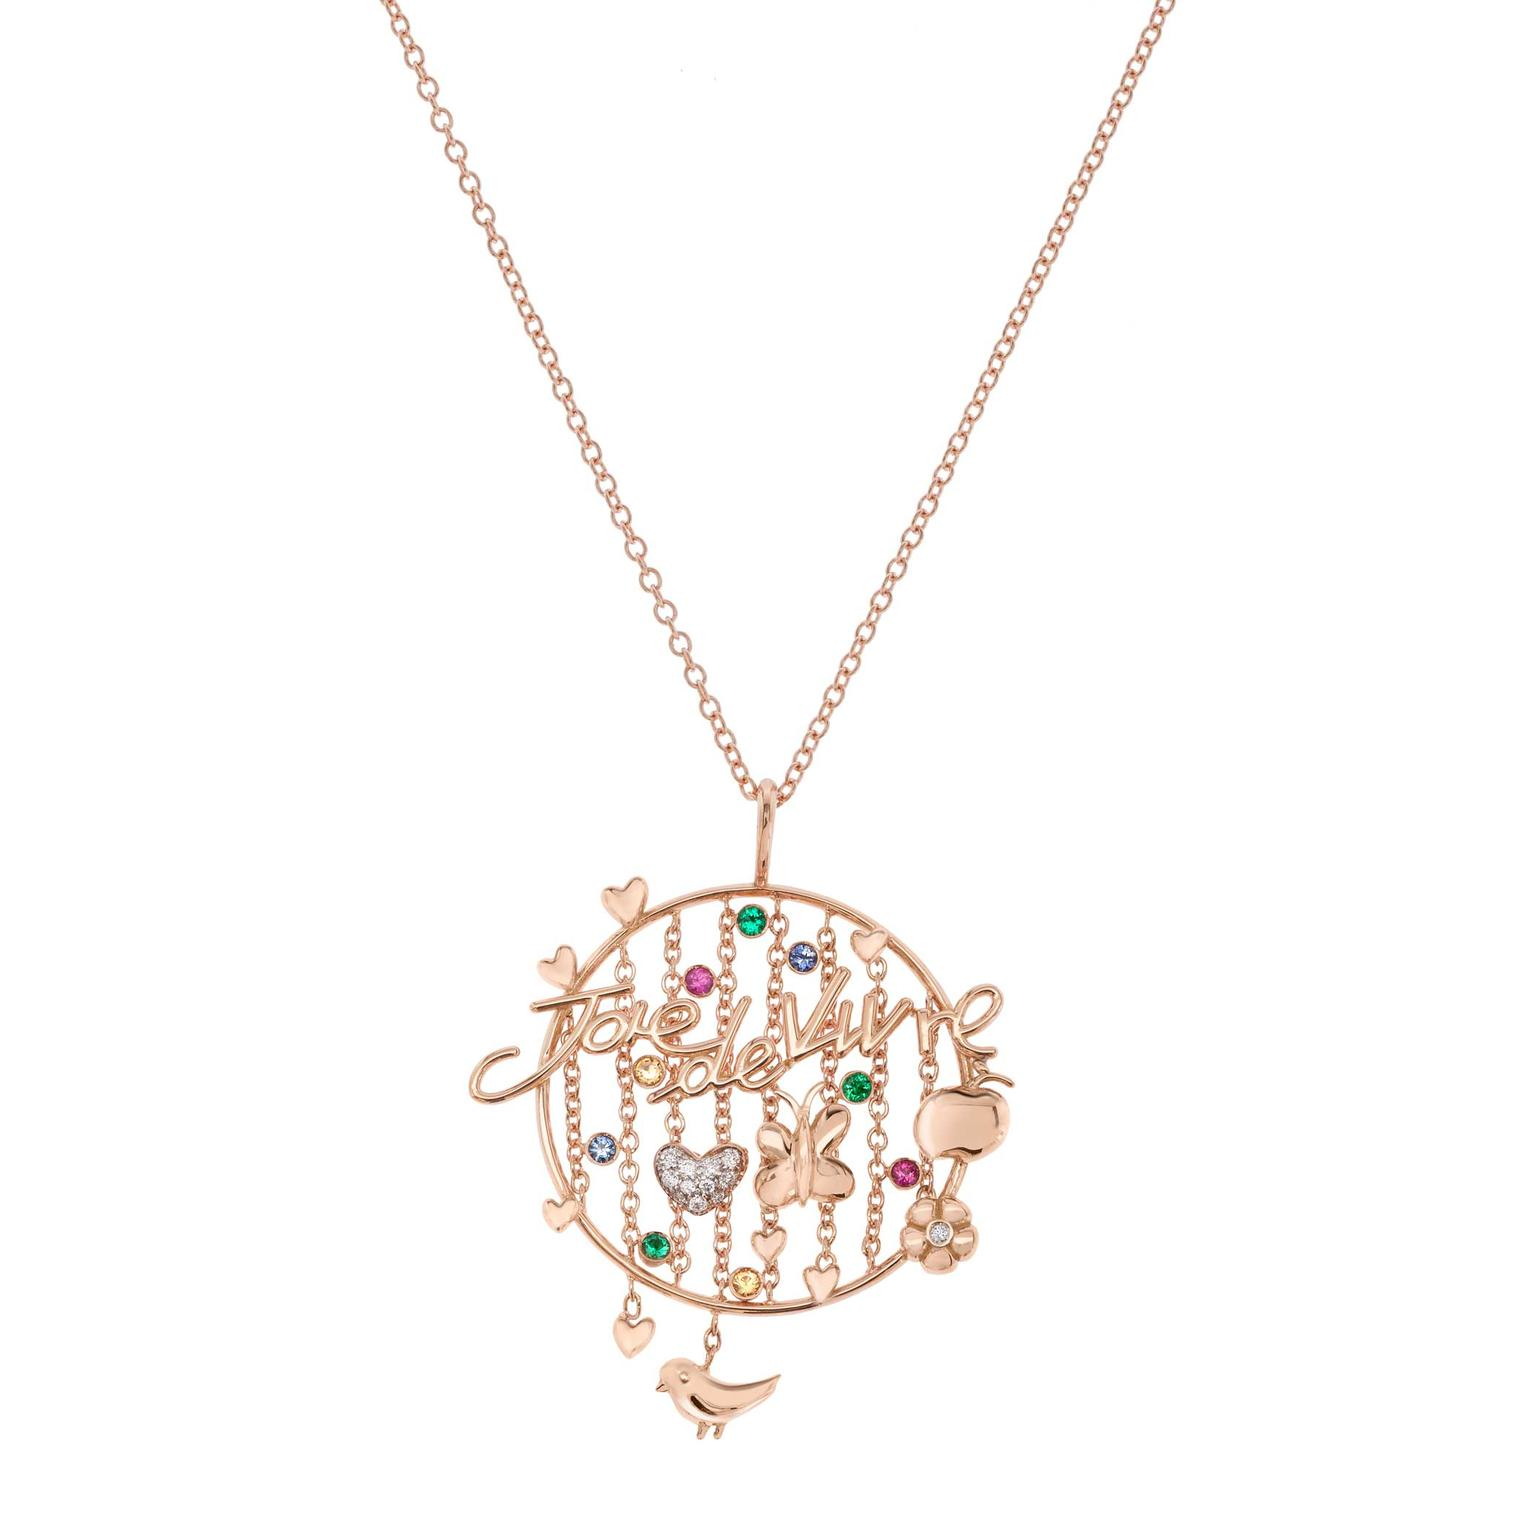 Francesca Villa Joie de Vivre rose gold necklace